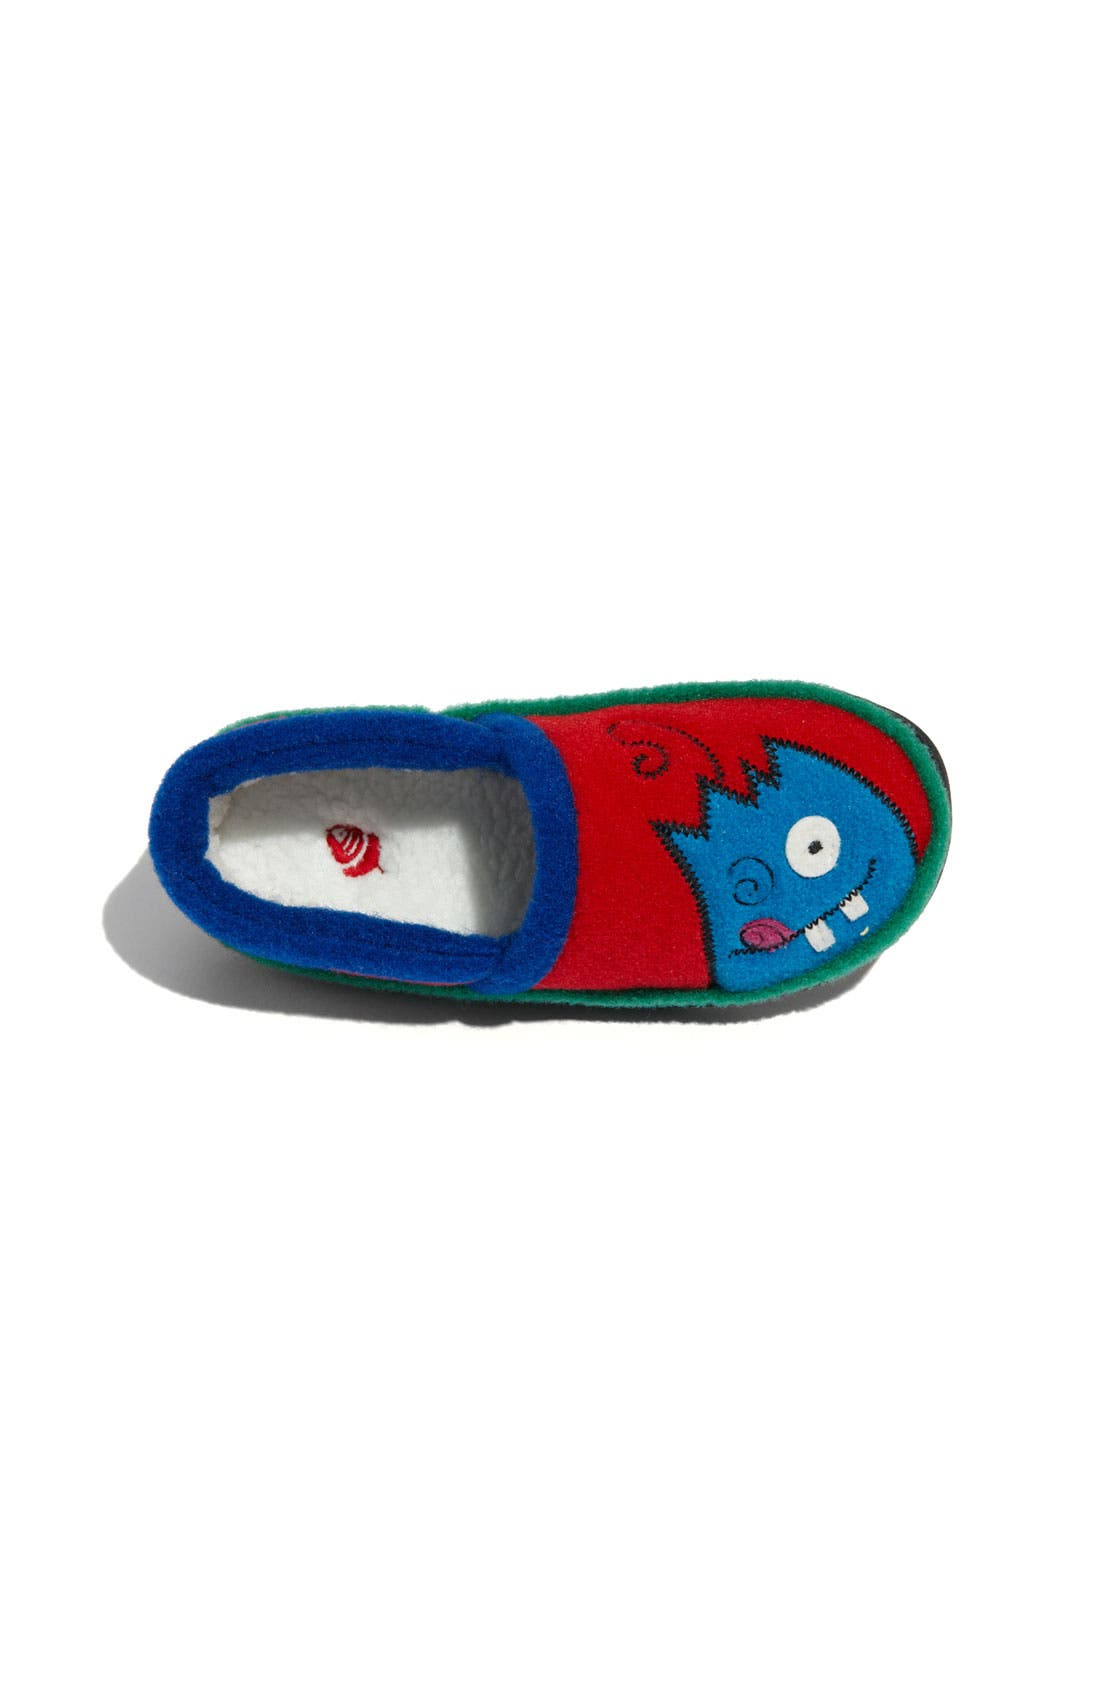 Alternate Image 3  - Acorn 'Monster Moc' Slipper (Toddler, Little Kid & Big Kid)